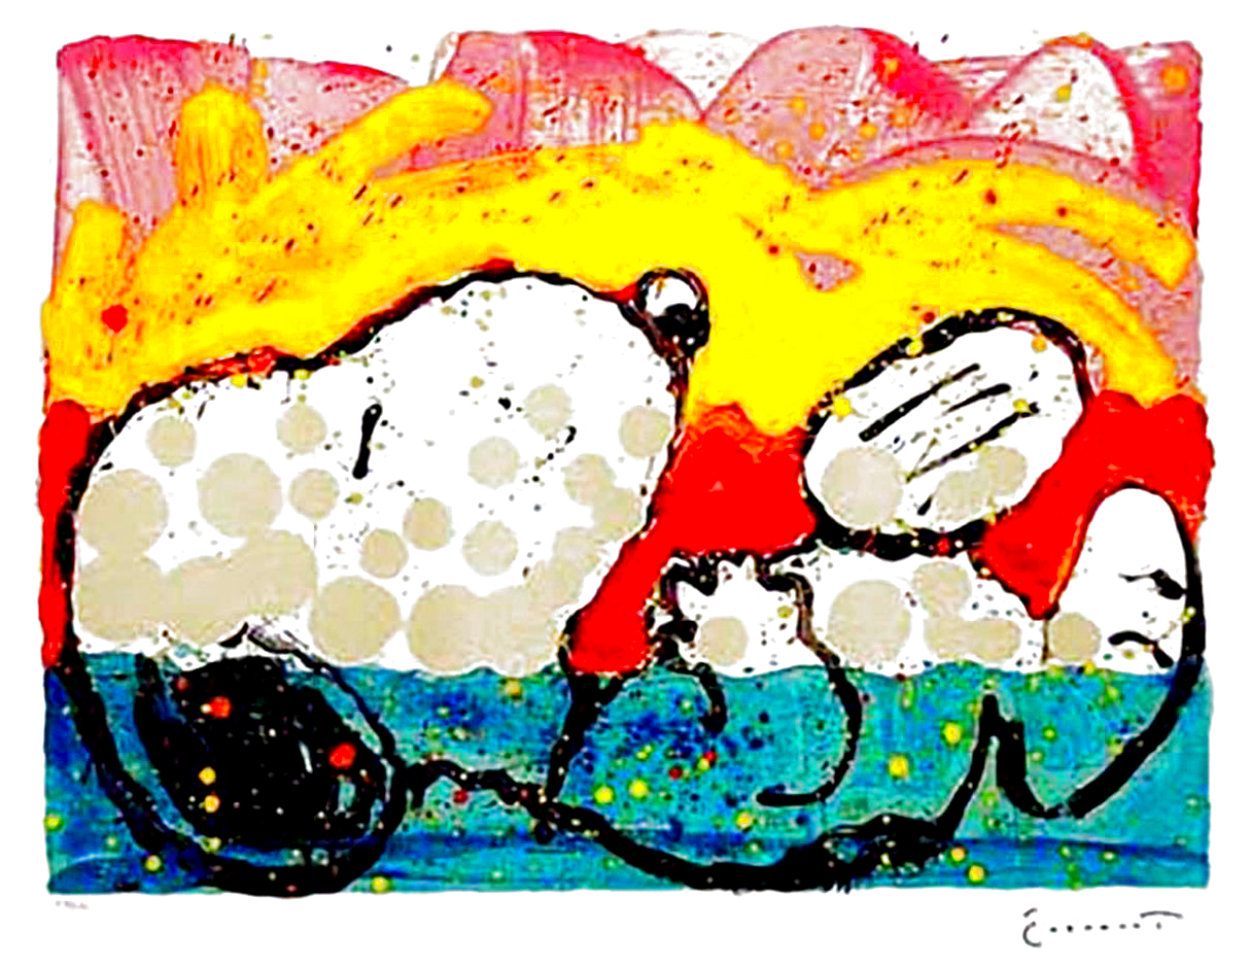 Bora Bora Boogie Down 2003 Limited Edition Print by Tom Everhart